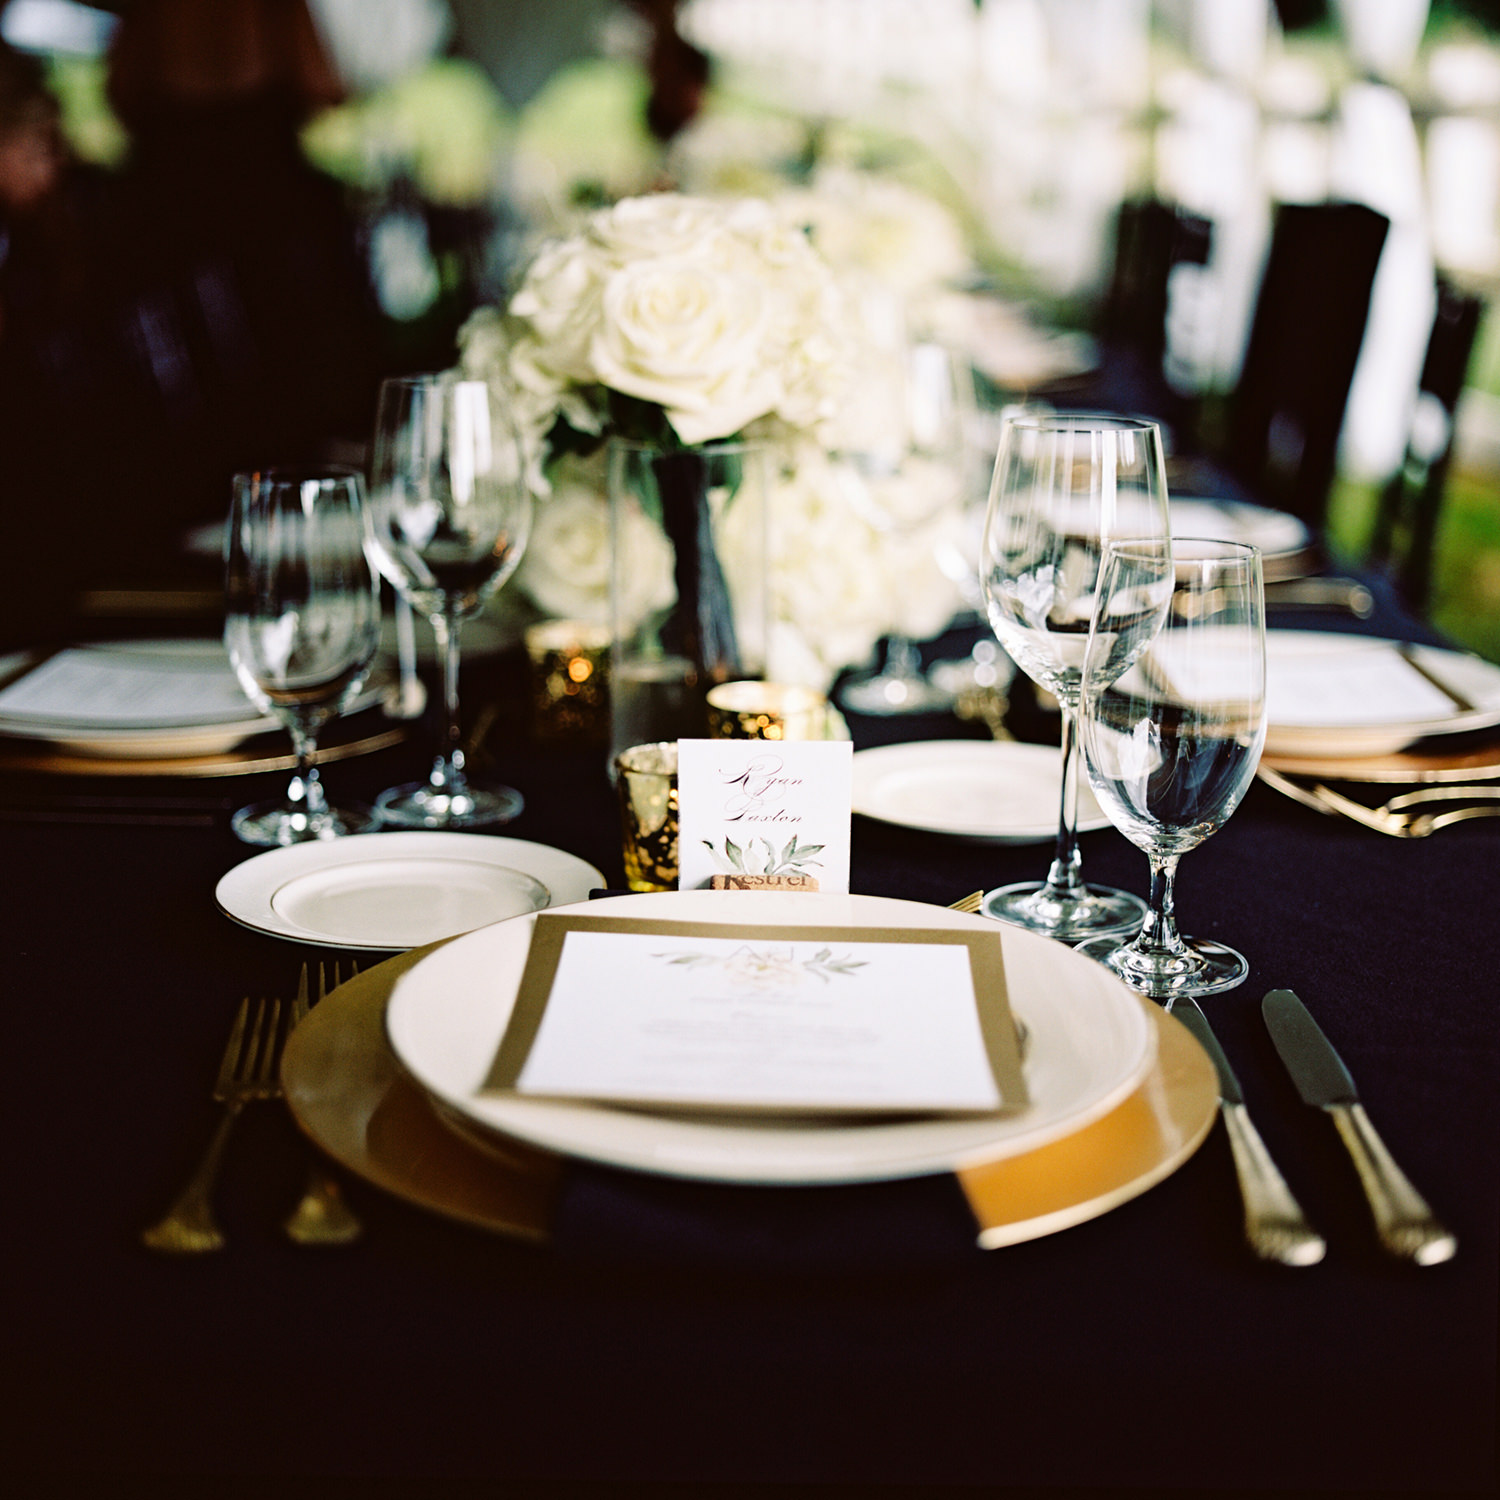 chateau-lill-woodinville-wedding-planner033.jpg